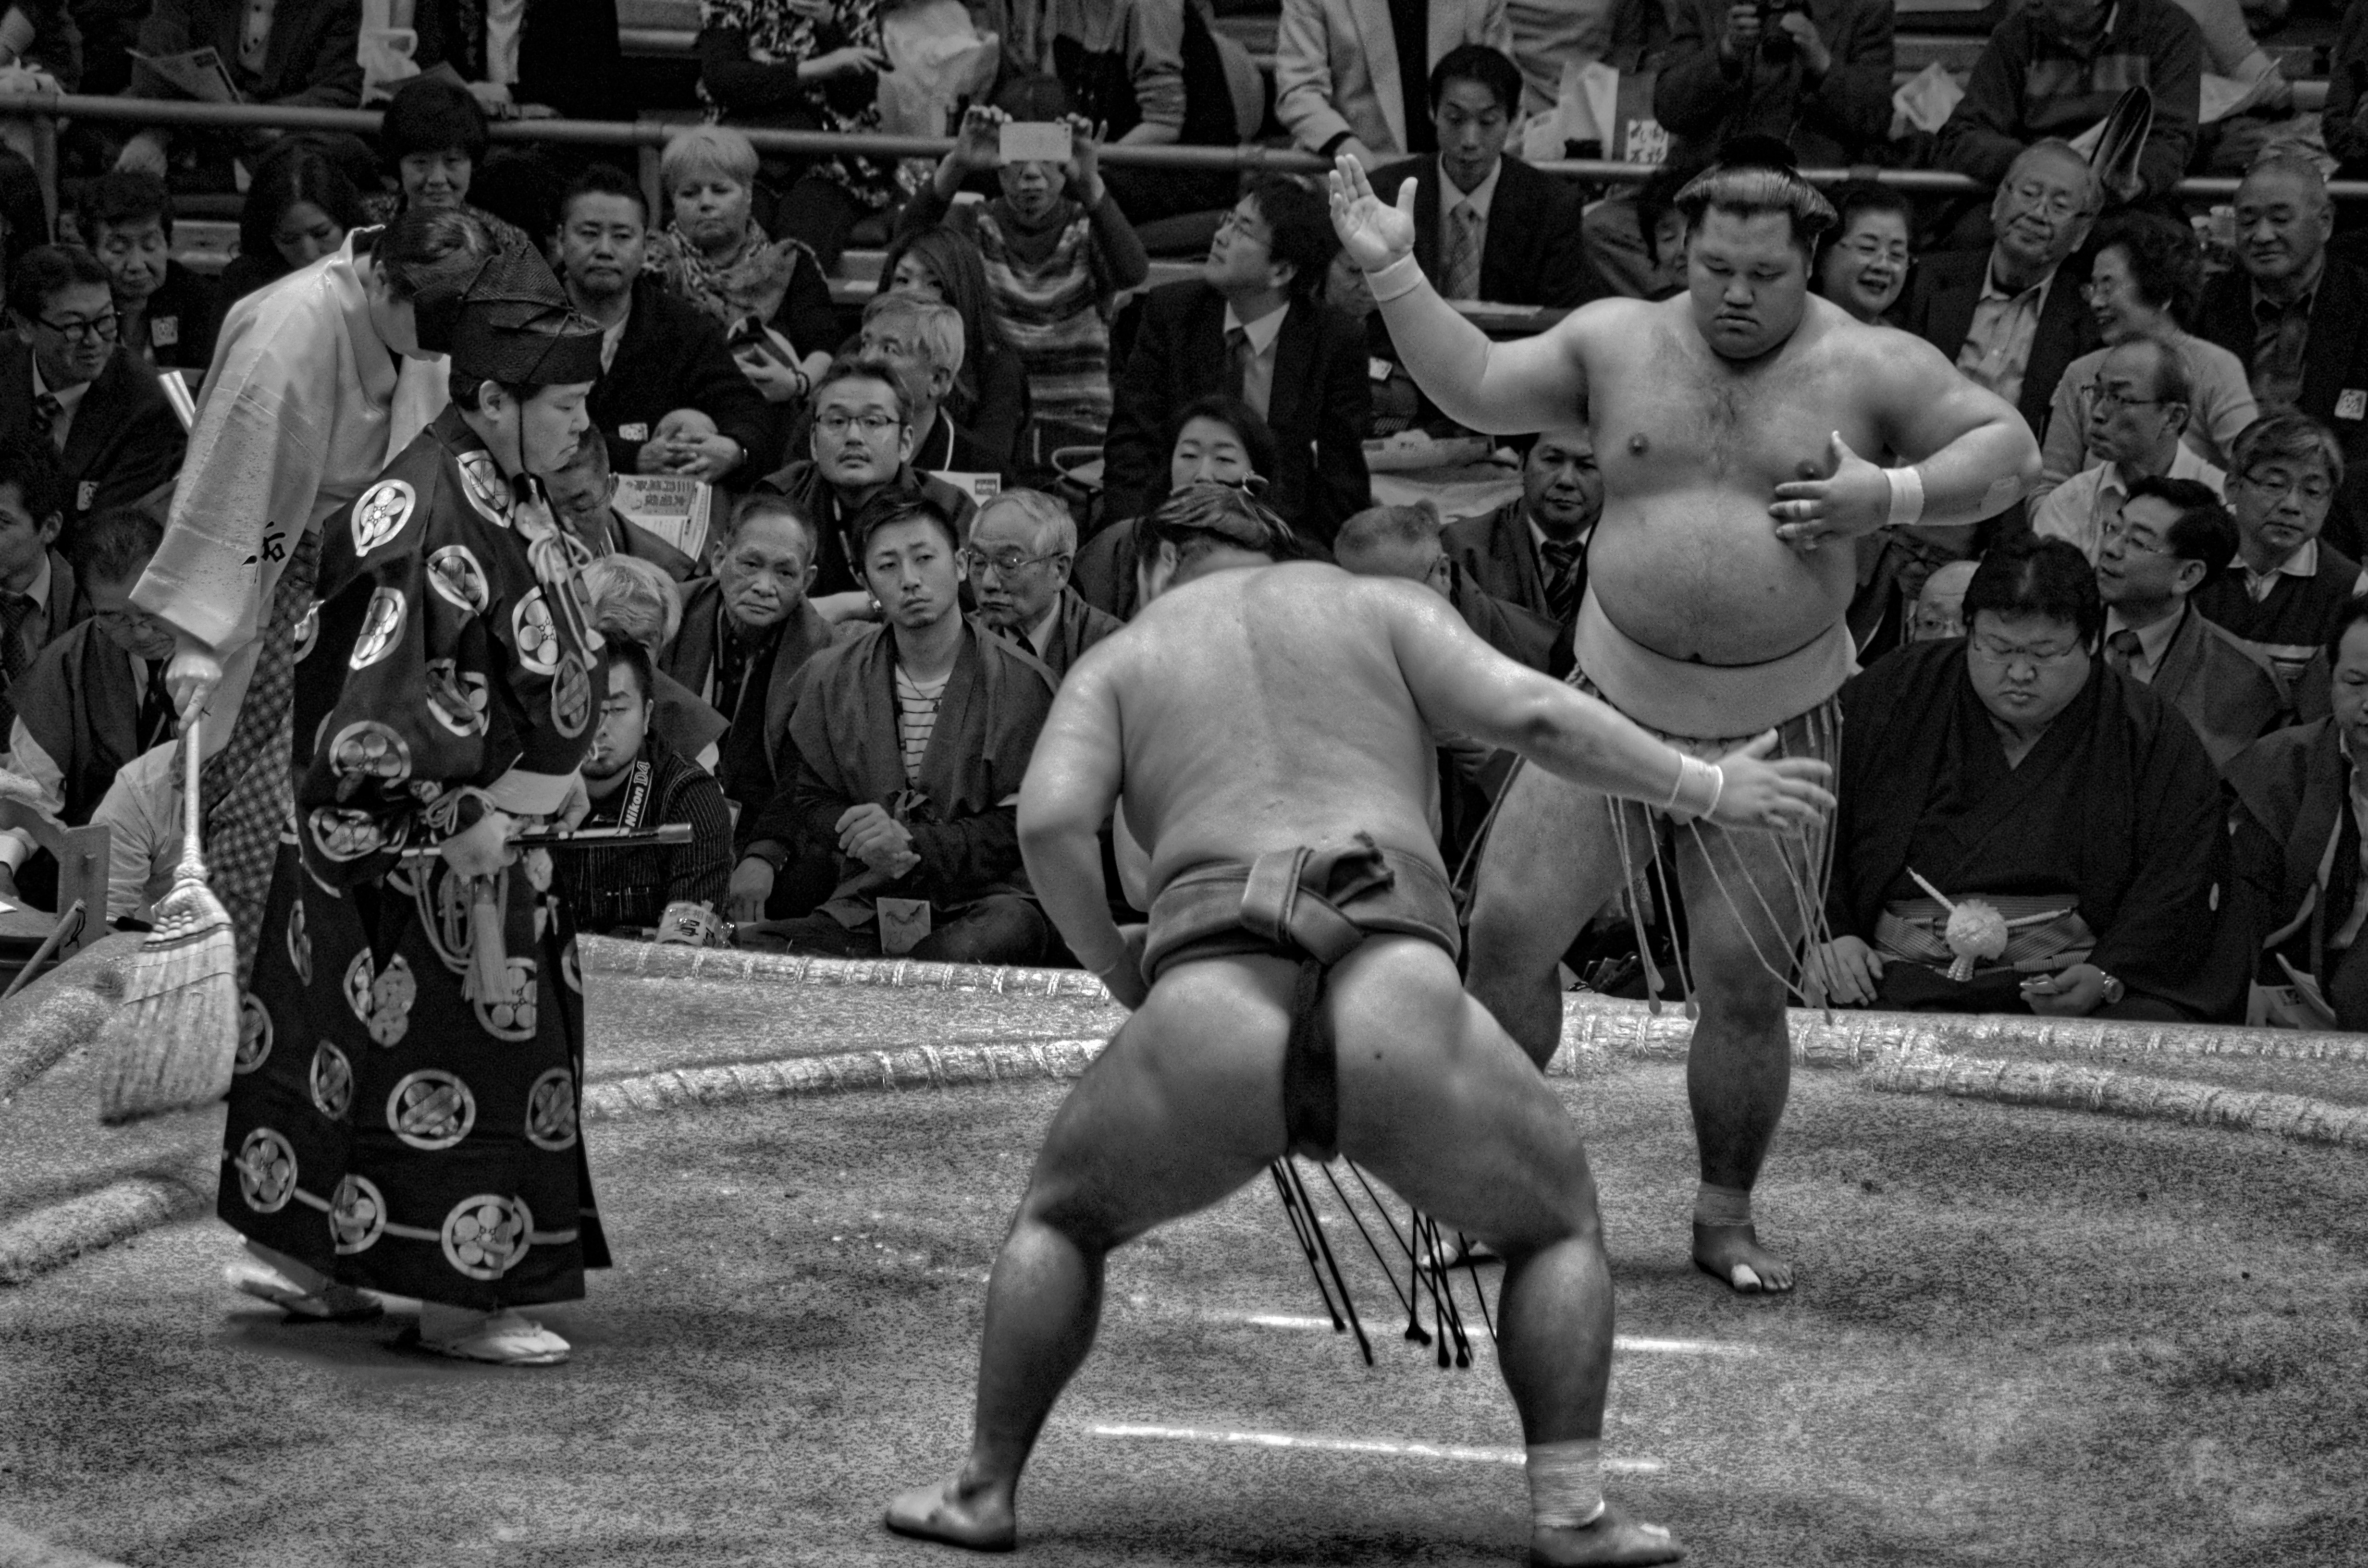 Grayscale Photo of Sumo Wrestling Surrounded With People, Athletes, Audience, Black and white, Crowd, HQ Photo